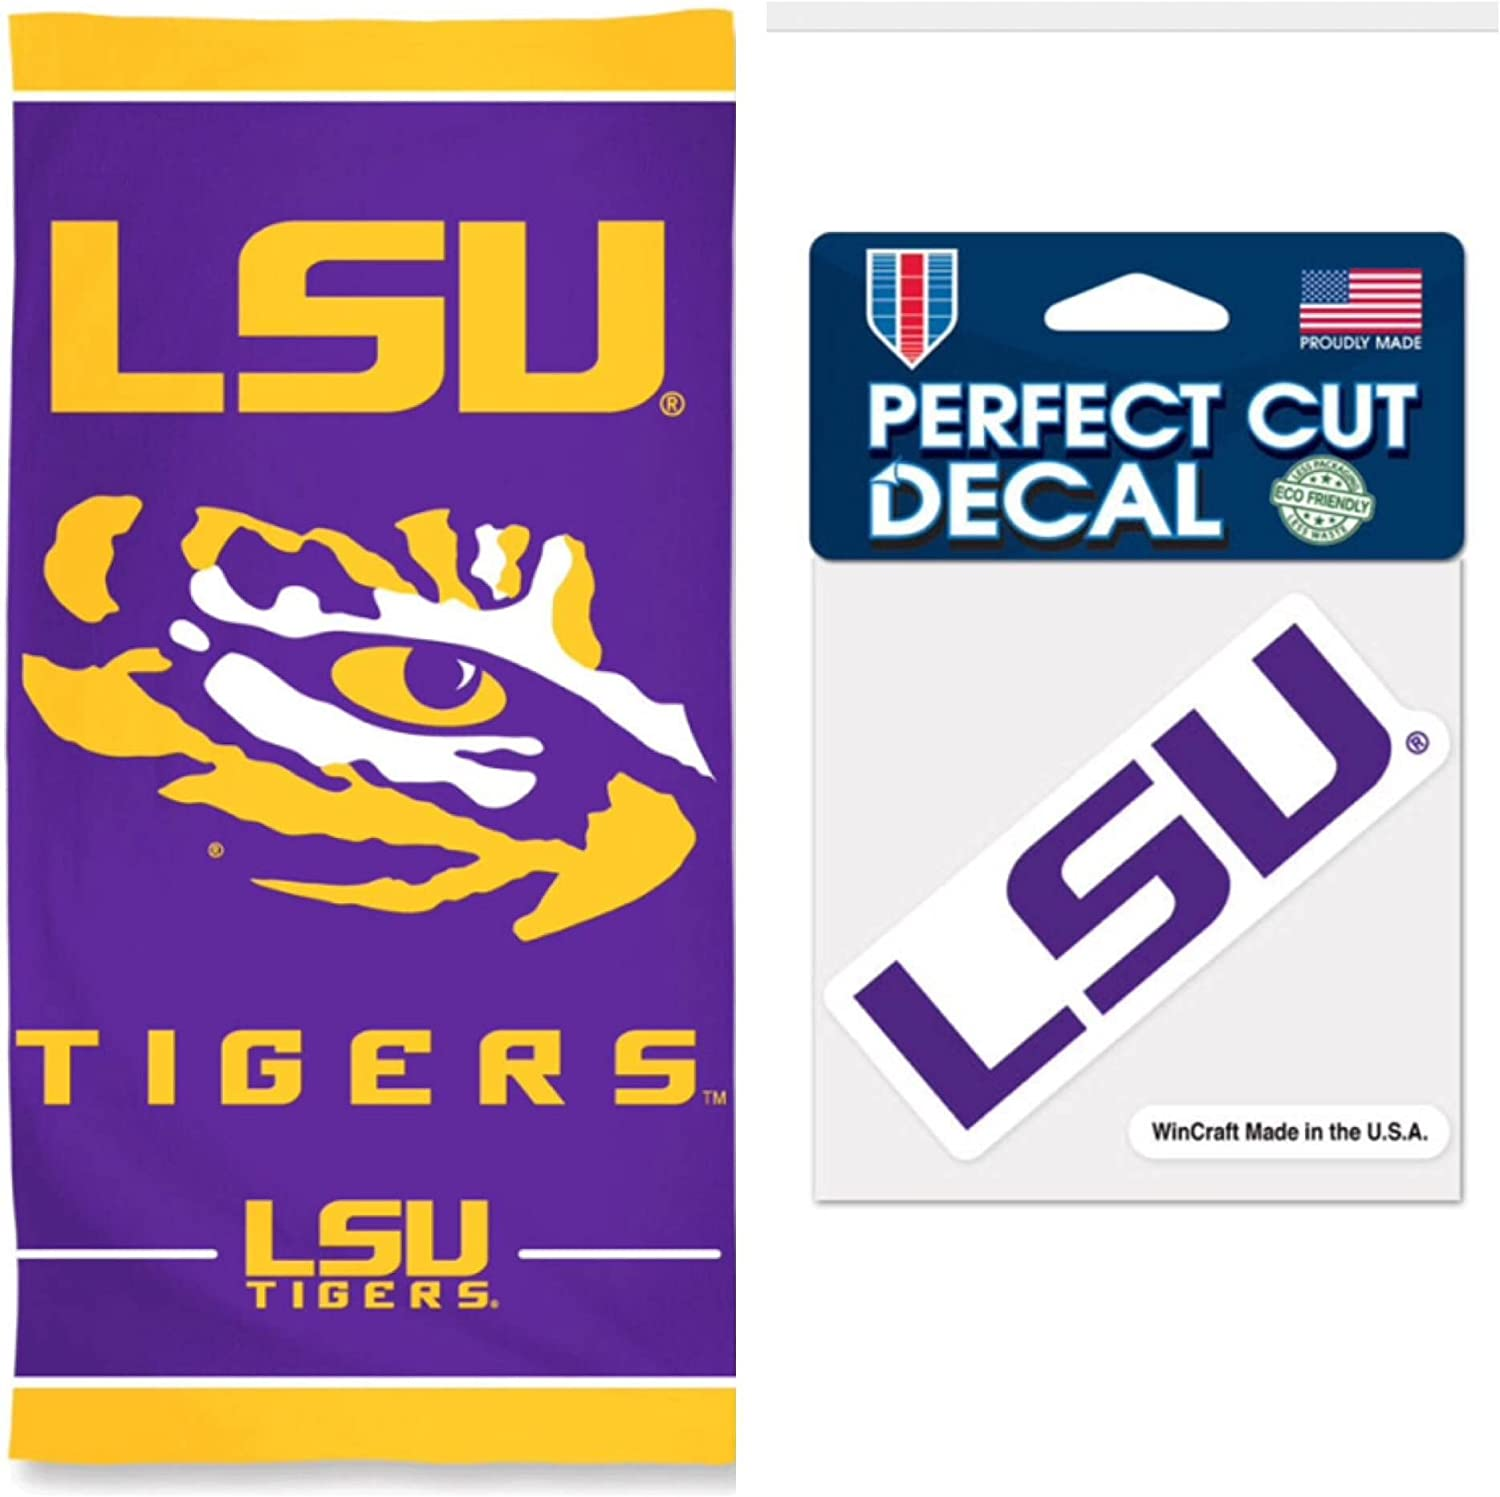 NCAA Lousiana State University LSU Tigers 30 x 60 inch Towel and 4 x 4 inch Perfect Cut Decal SET